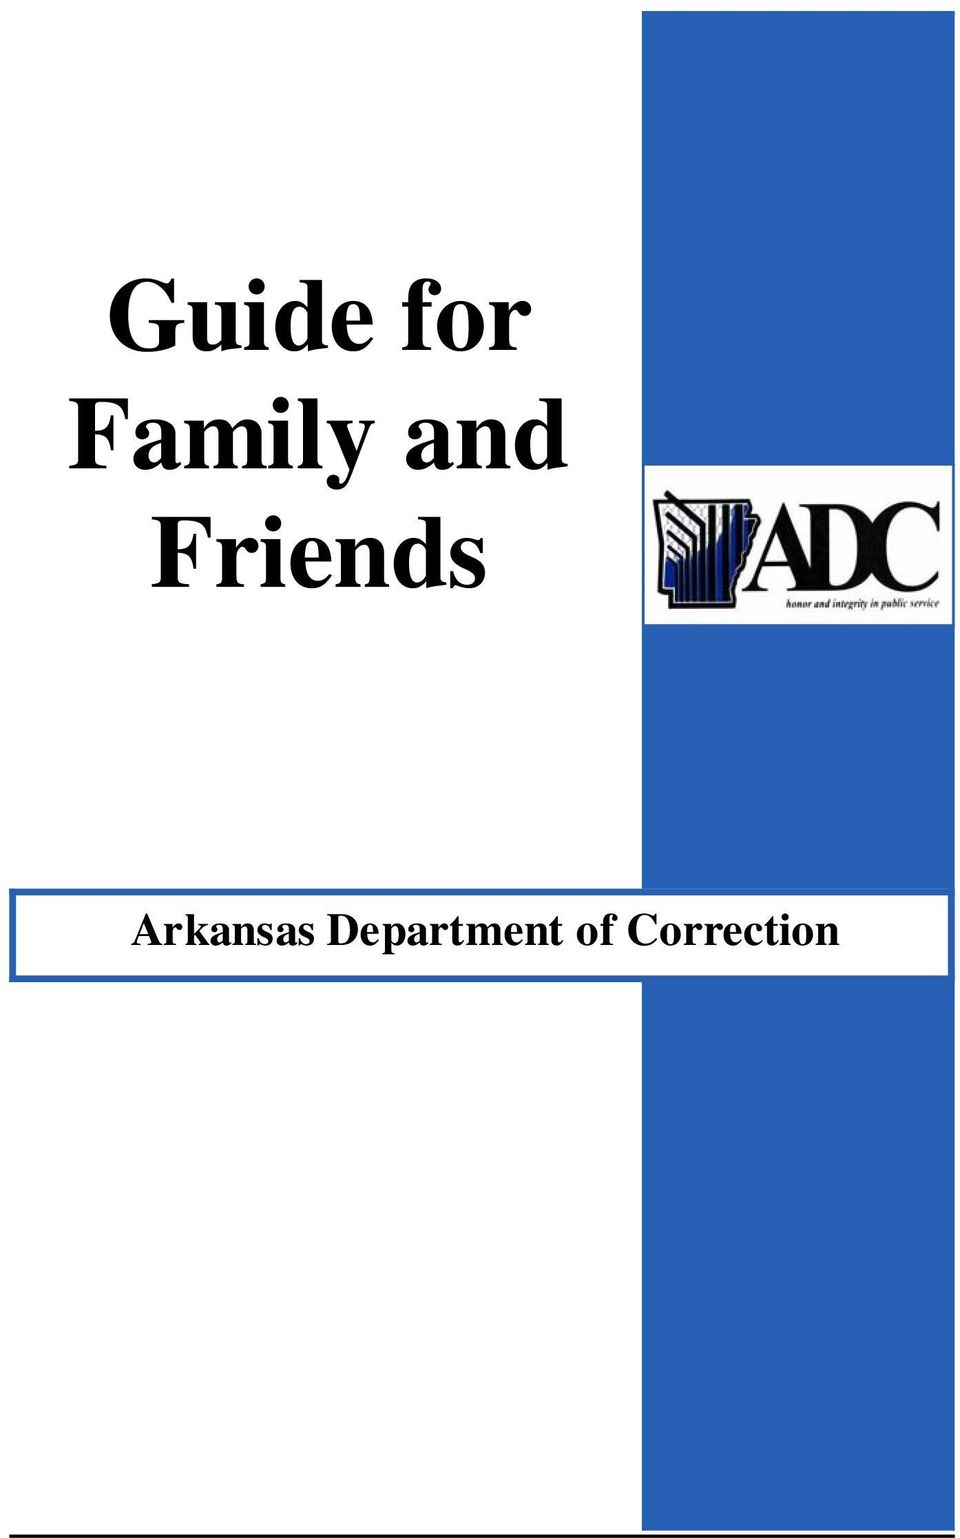 Guide for Family and Friends  Arkansas Department of